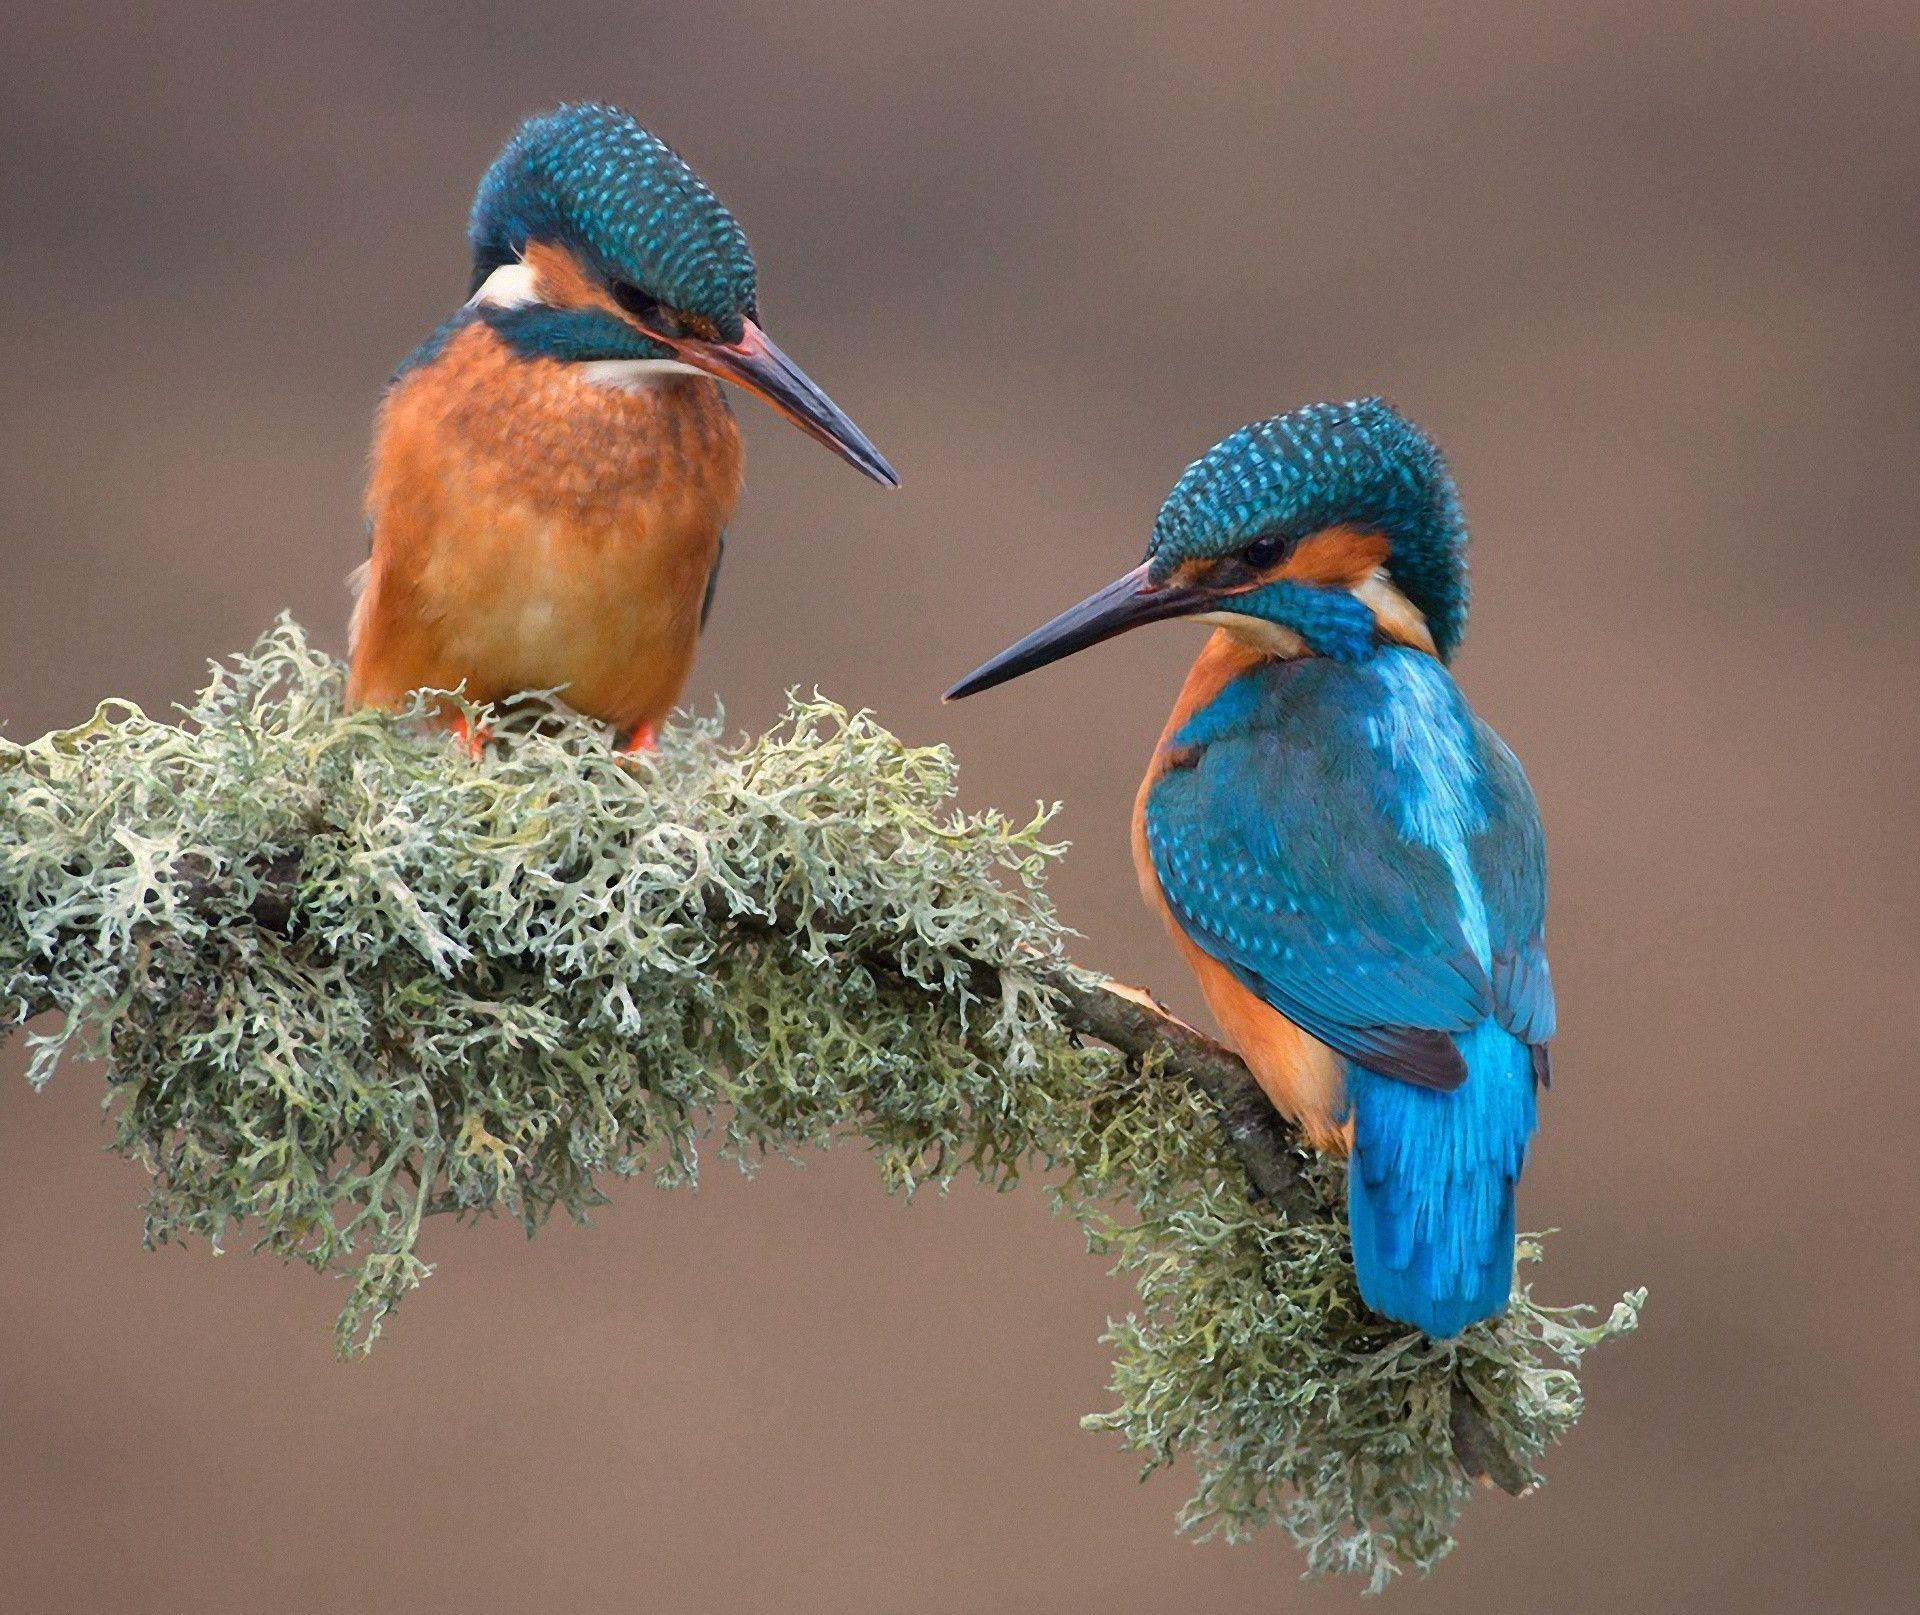 kingfisher wallpapers hd - photo #11